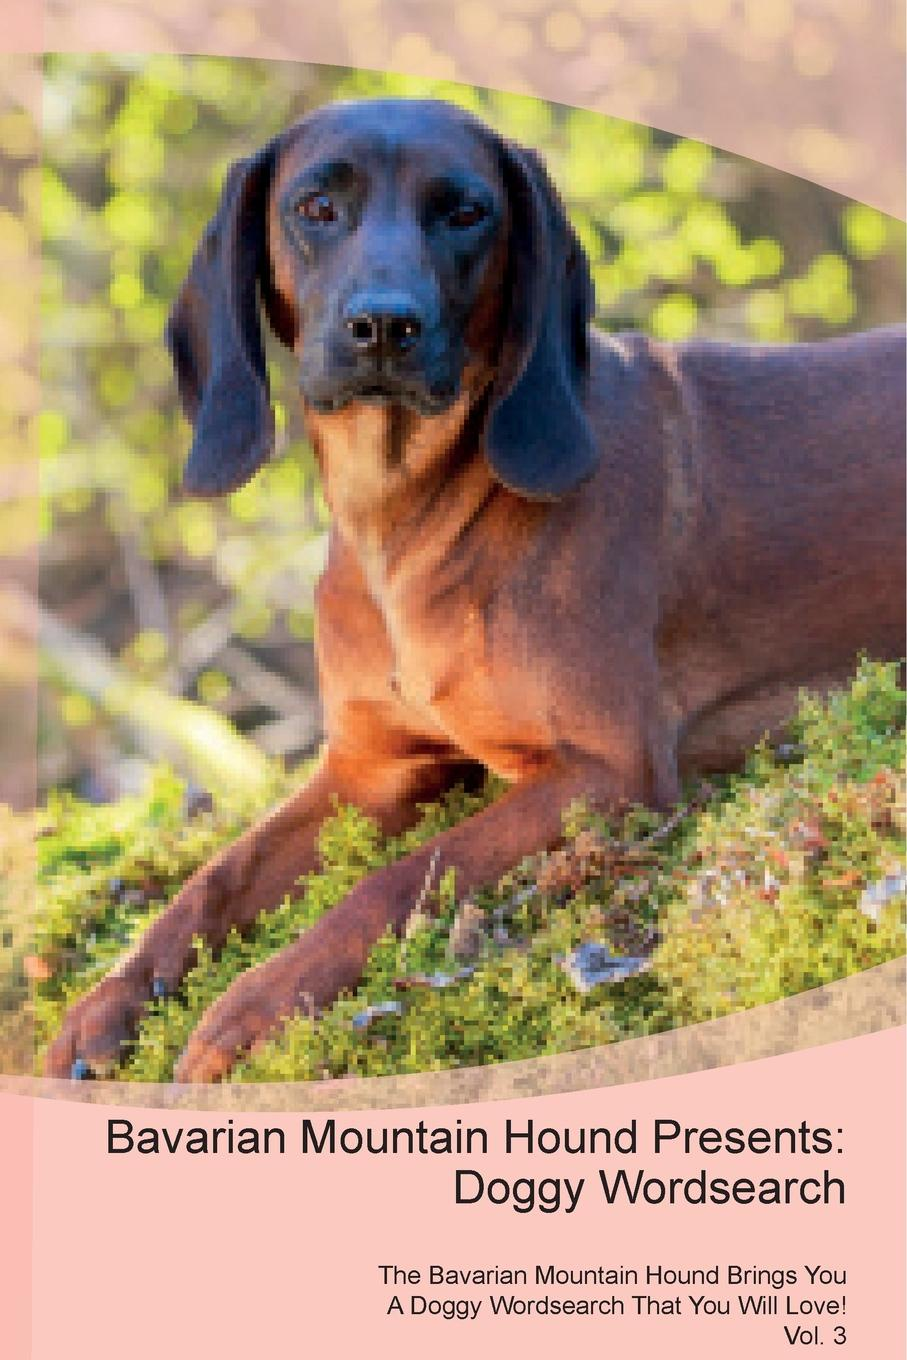 Doggy Puzzles Bavarian Mountain Hound Presents. Wordsearch The Brings You A That Will Love! Vol. 3